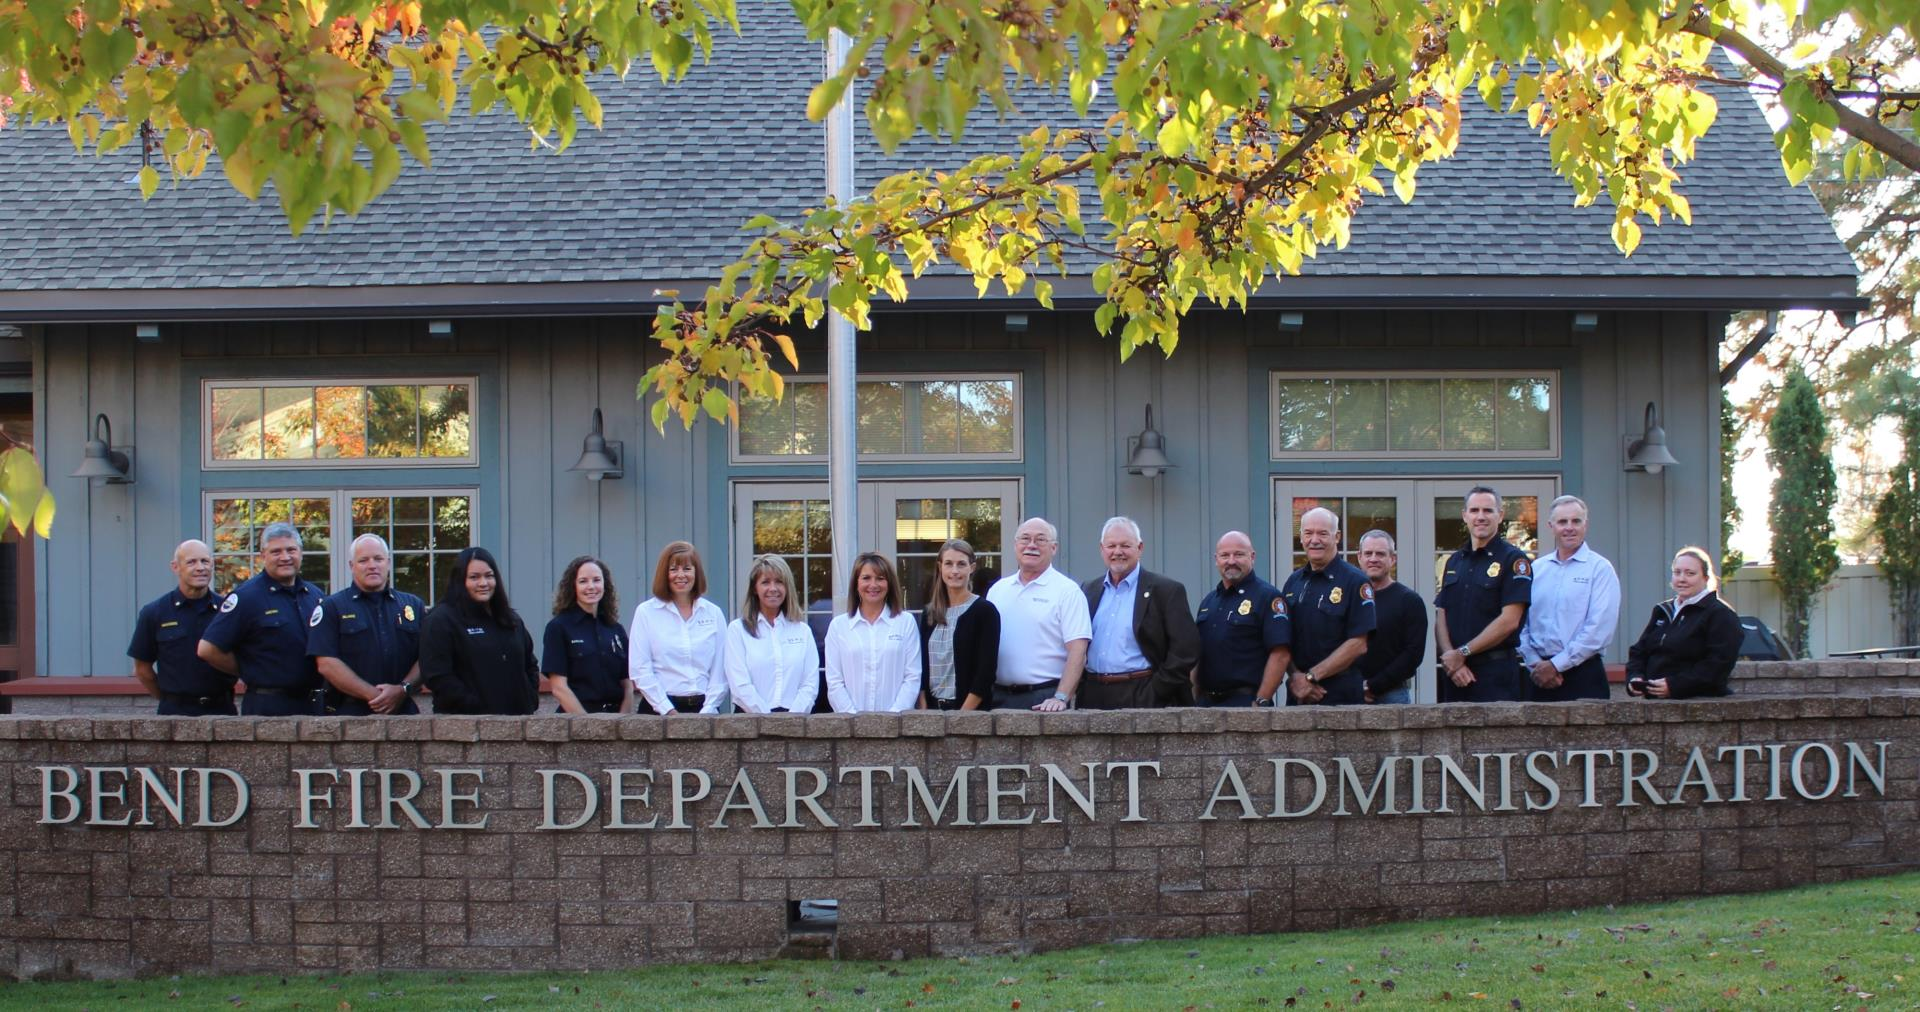 Bend Fire Admin Group Photo 2017